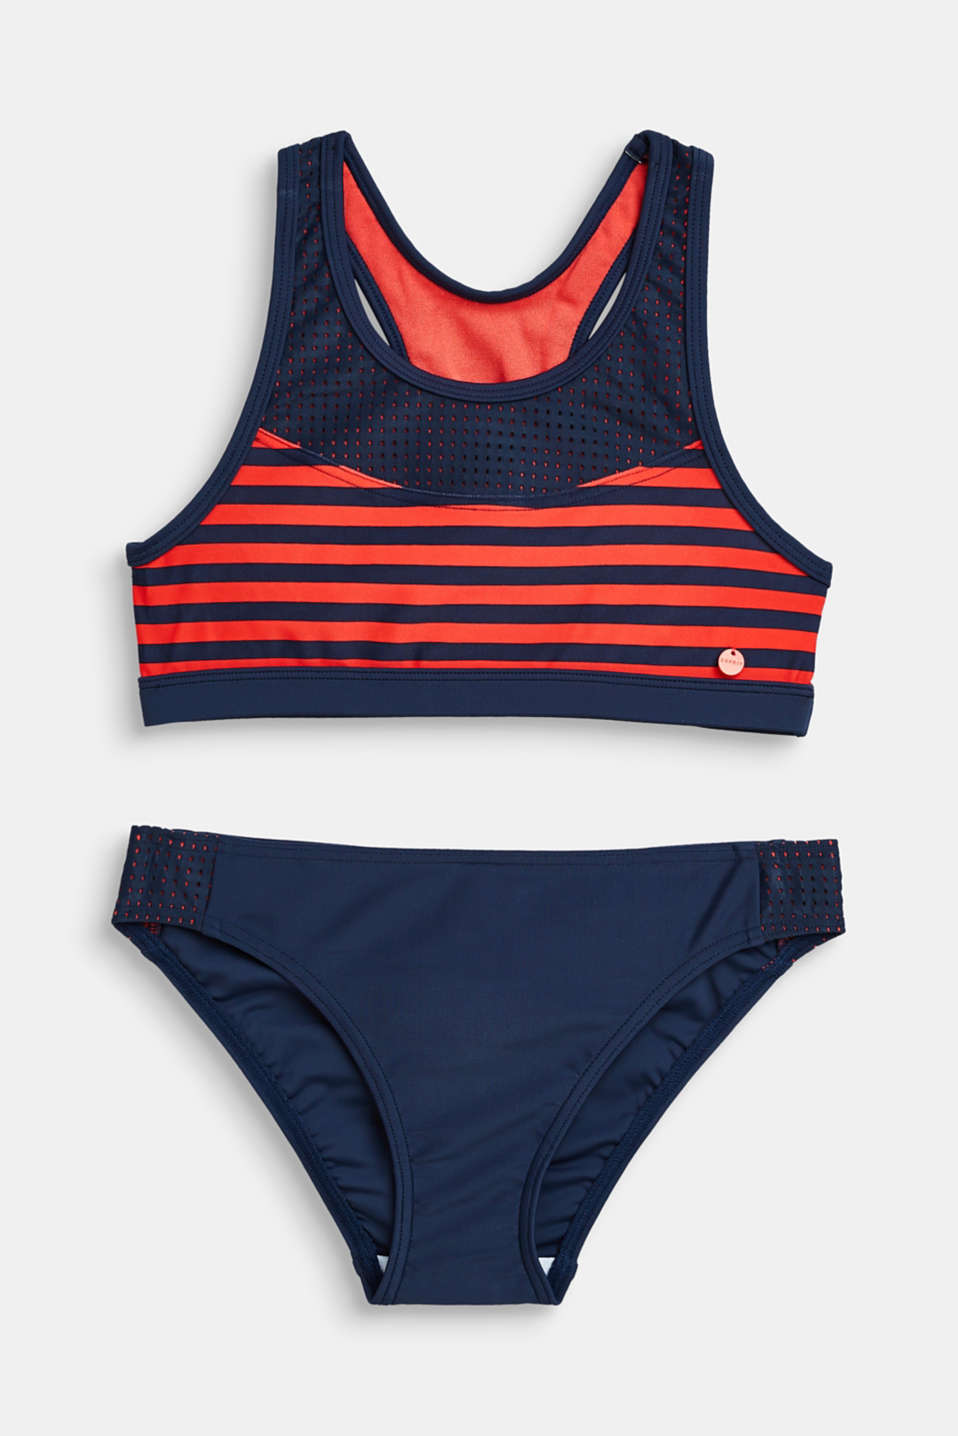 Esprit - Crop top bikini set with stripes